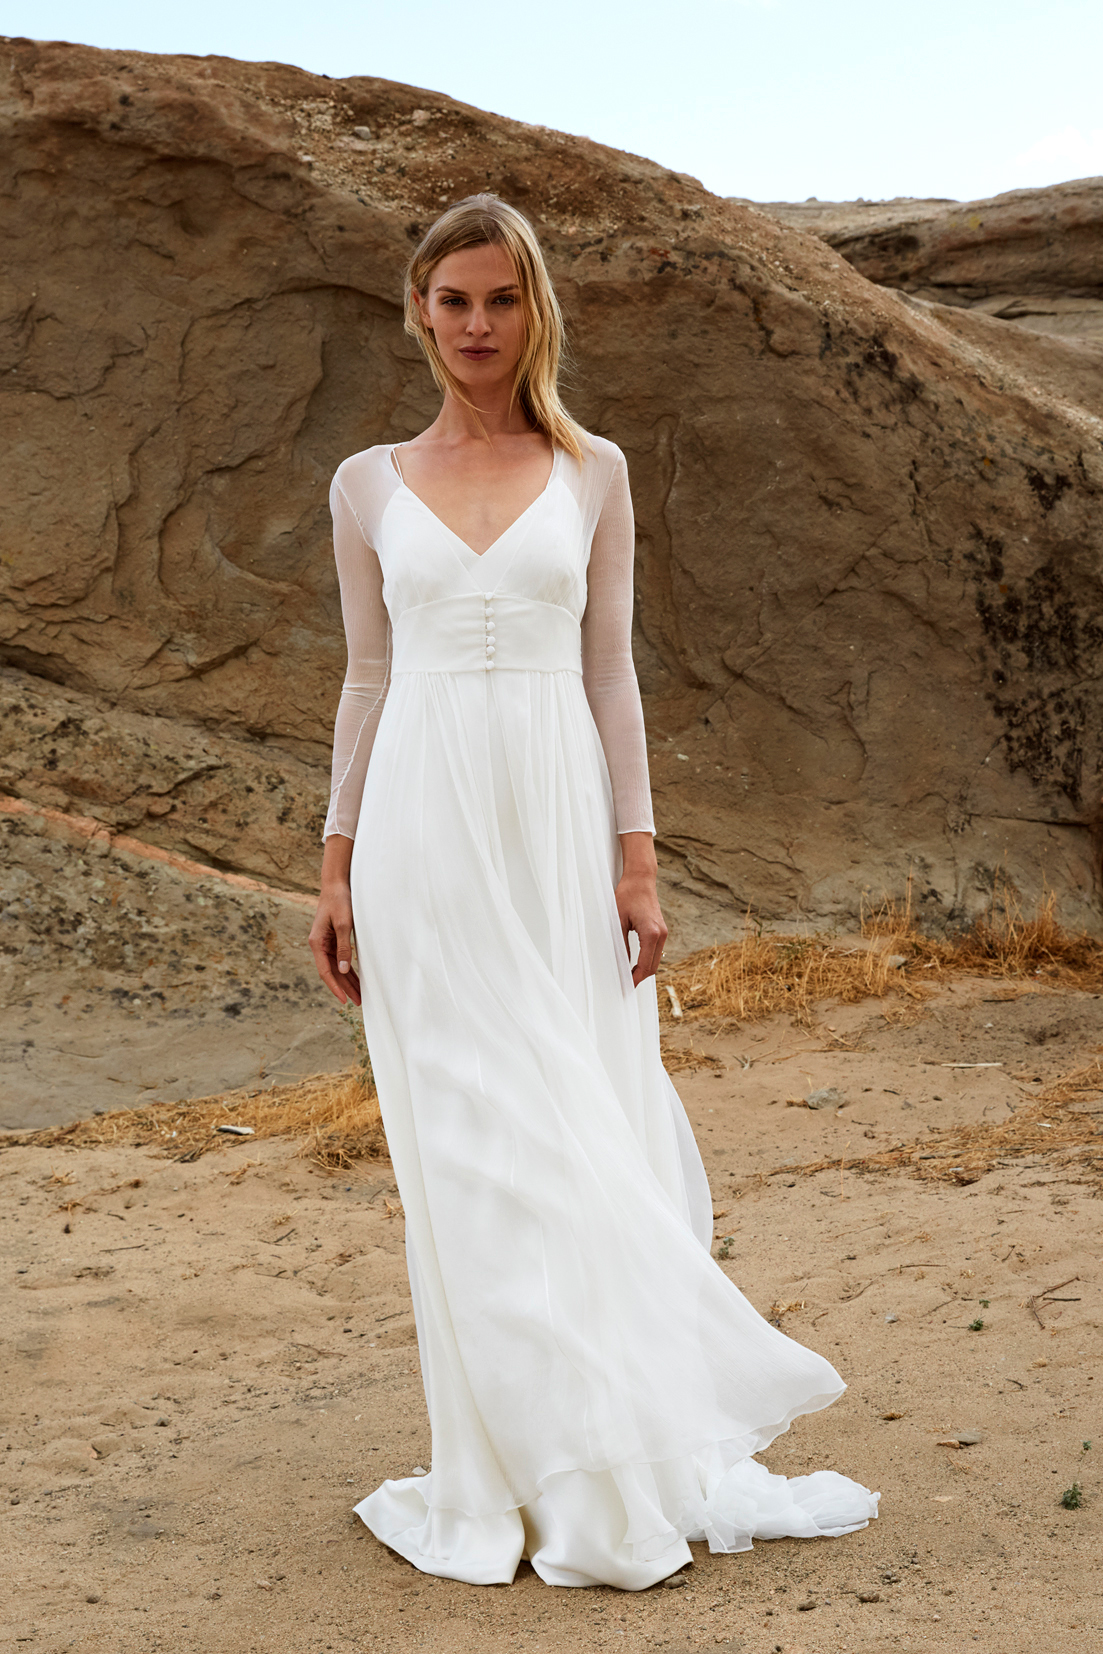 savannah miller fall 2018 spaghetti strap chiffon overlay wedding dress